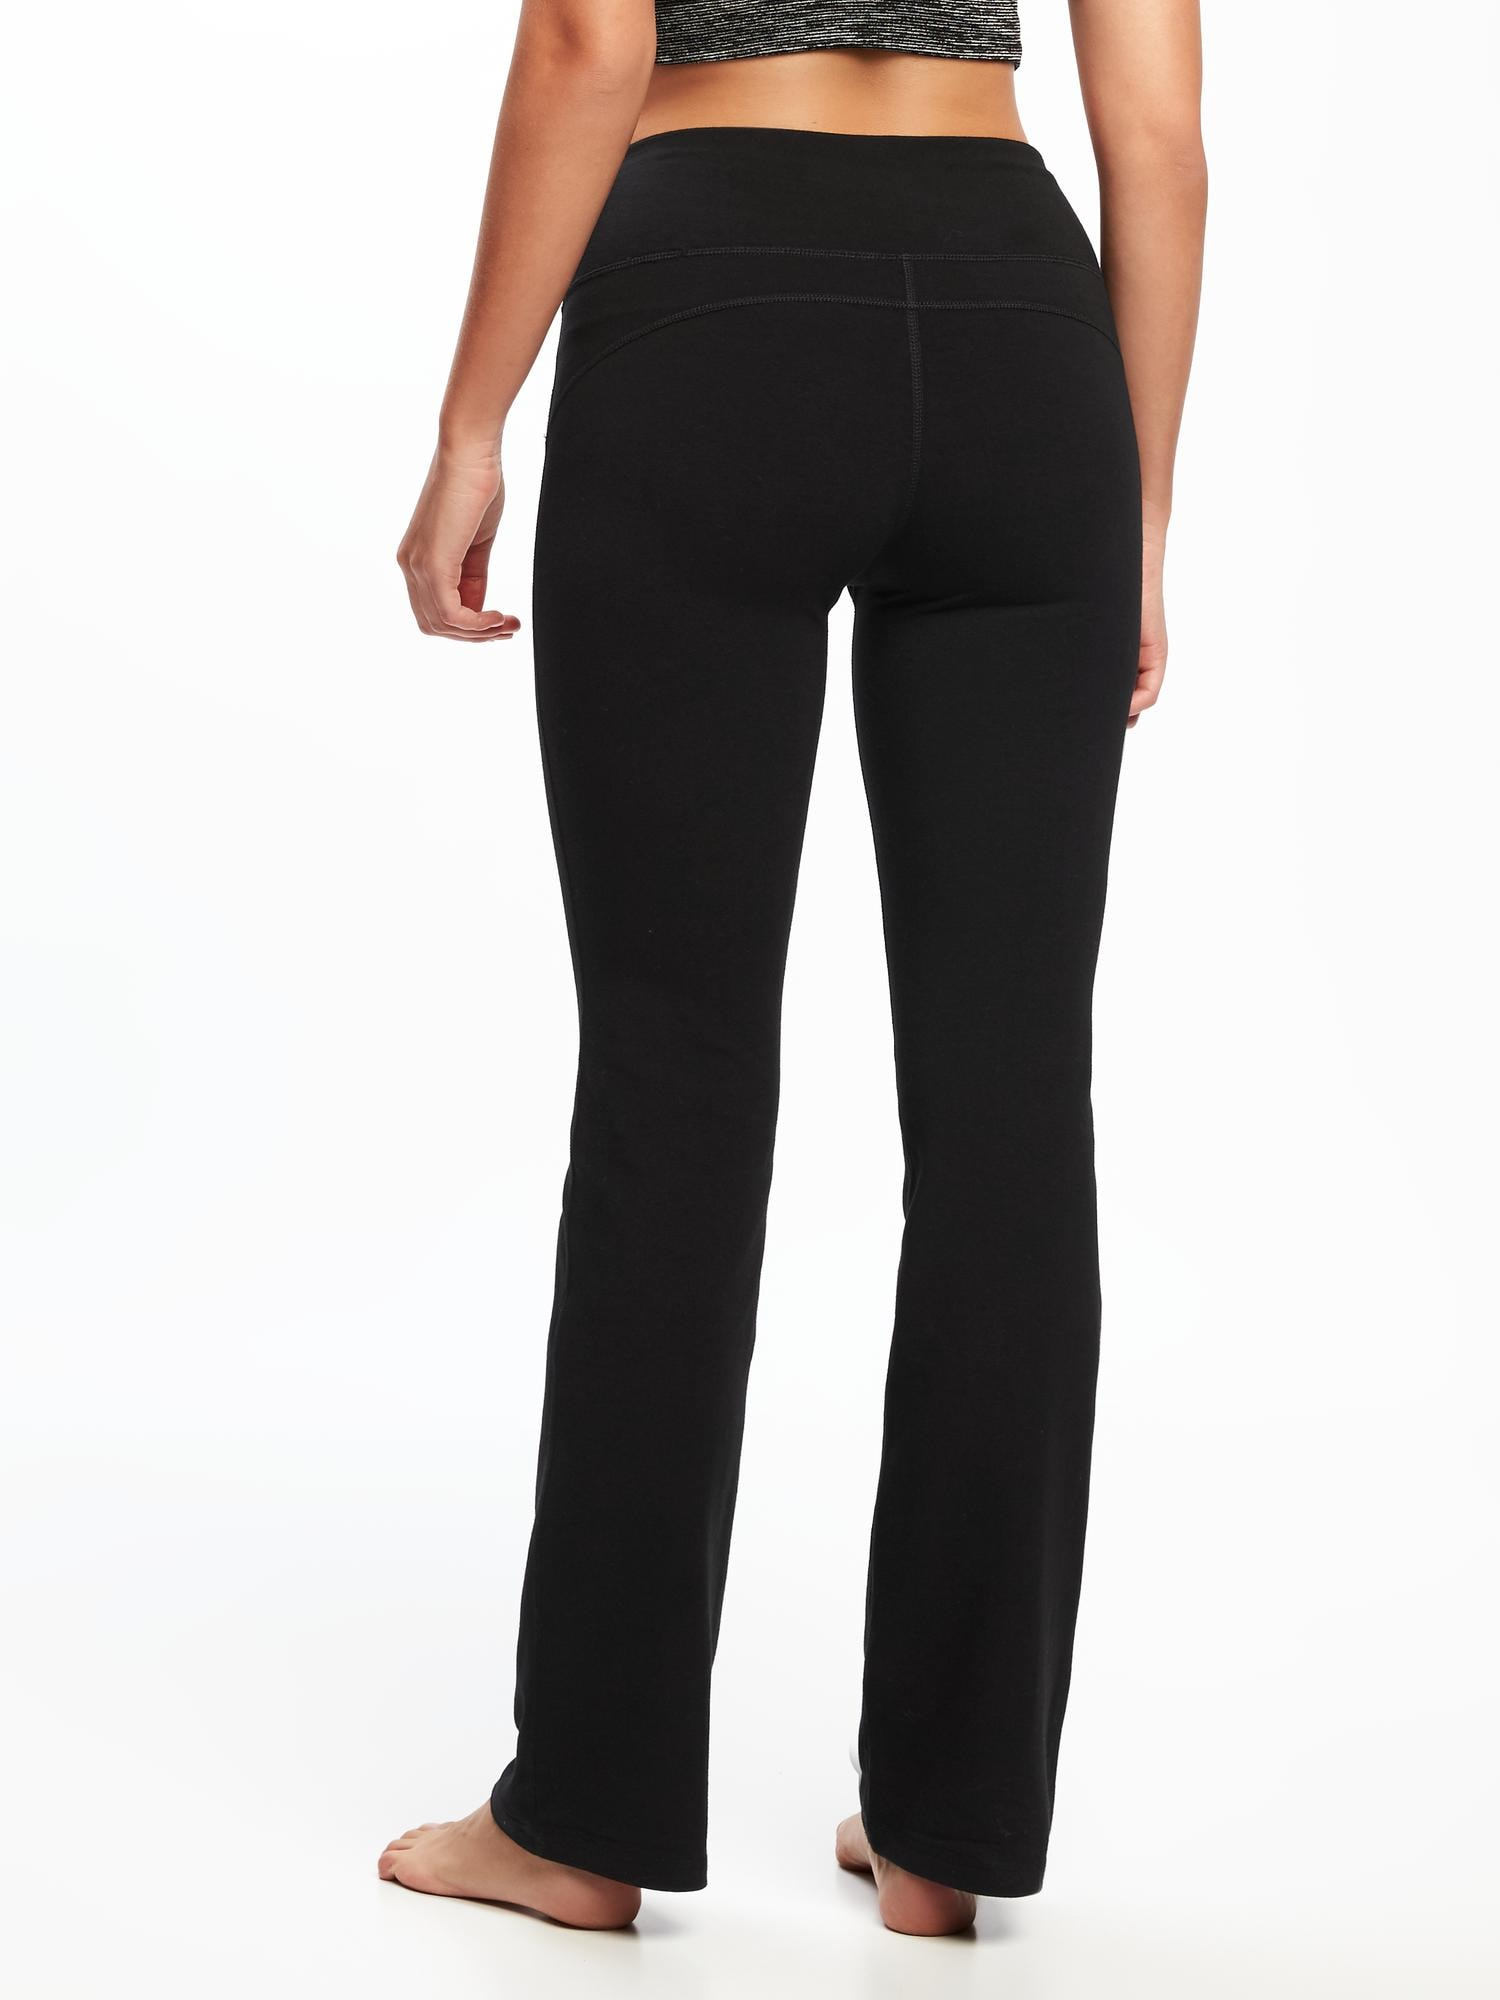 Go-Dry Mid-Rise Bootcut Yoga Pants for Women | Old Navy